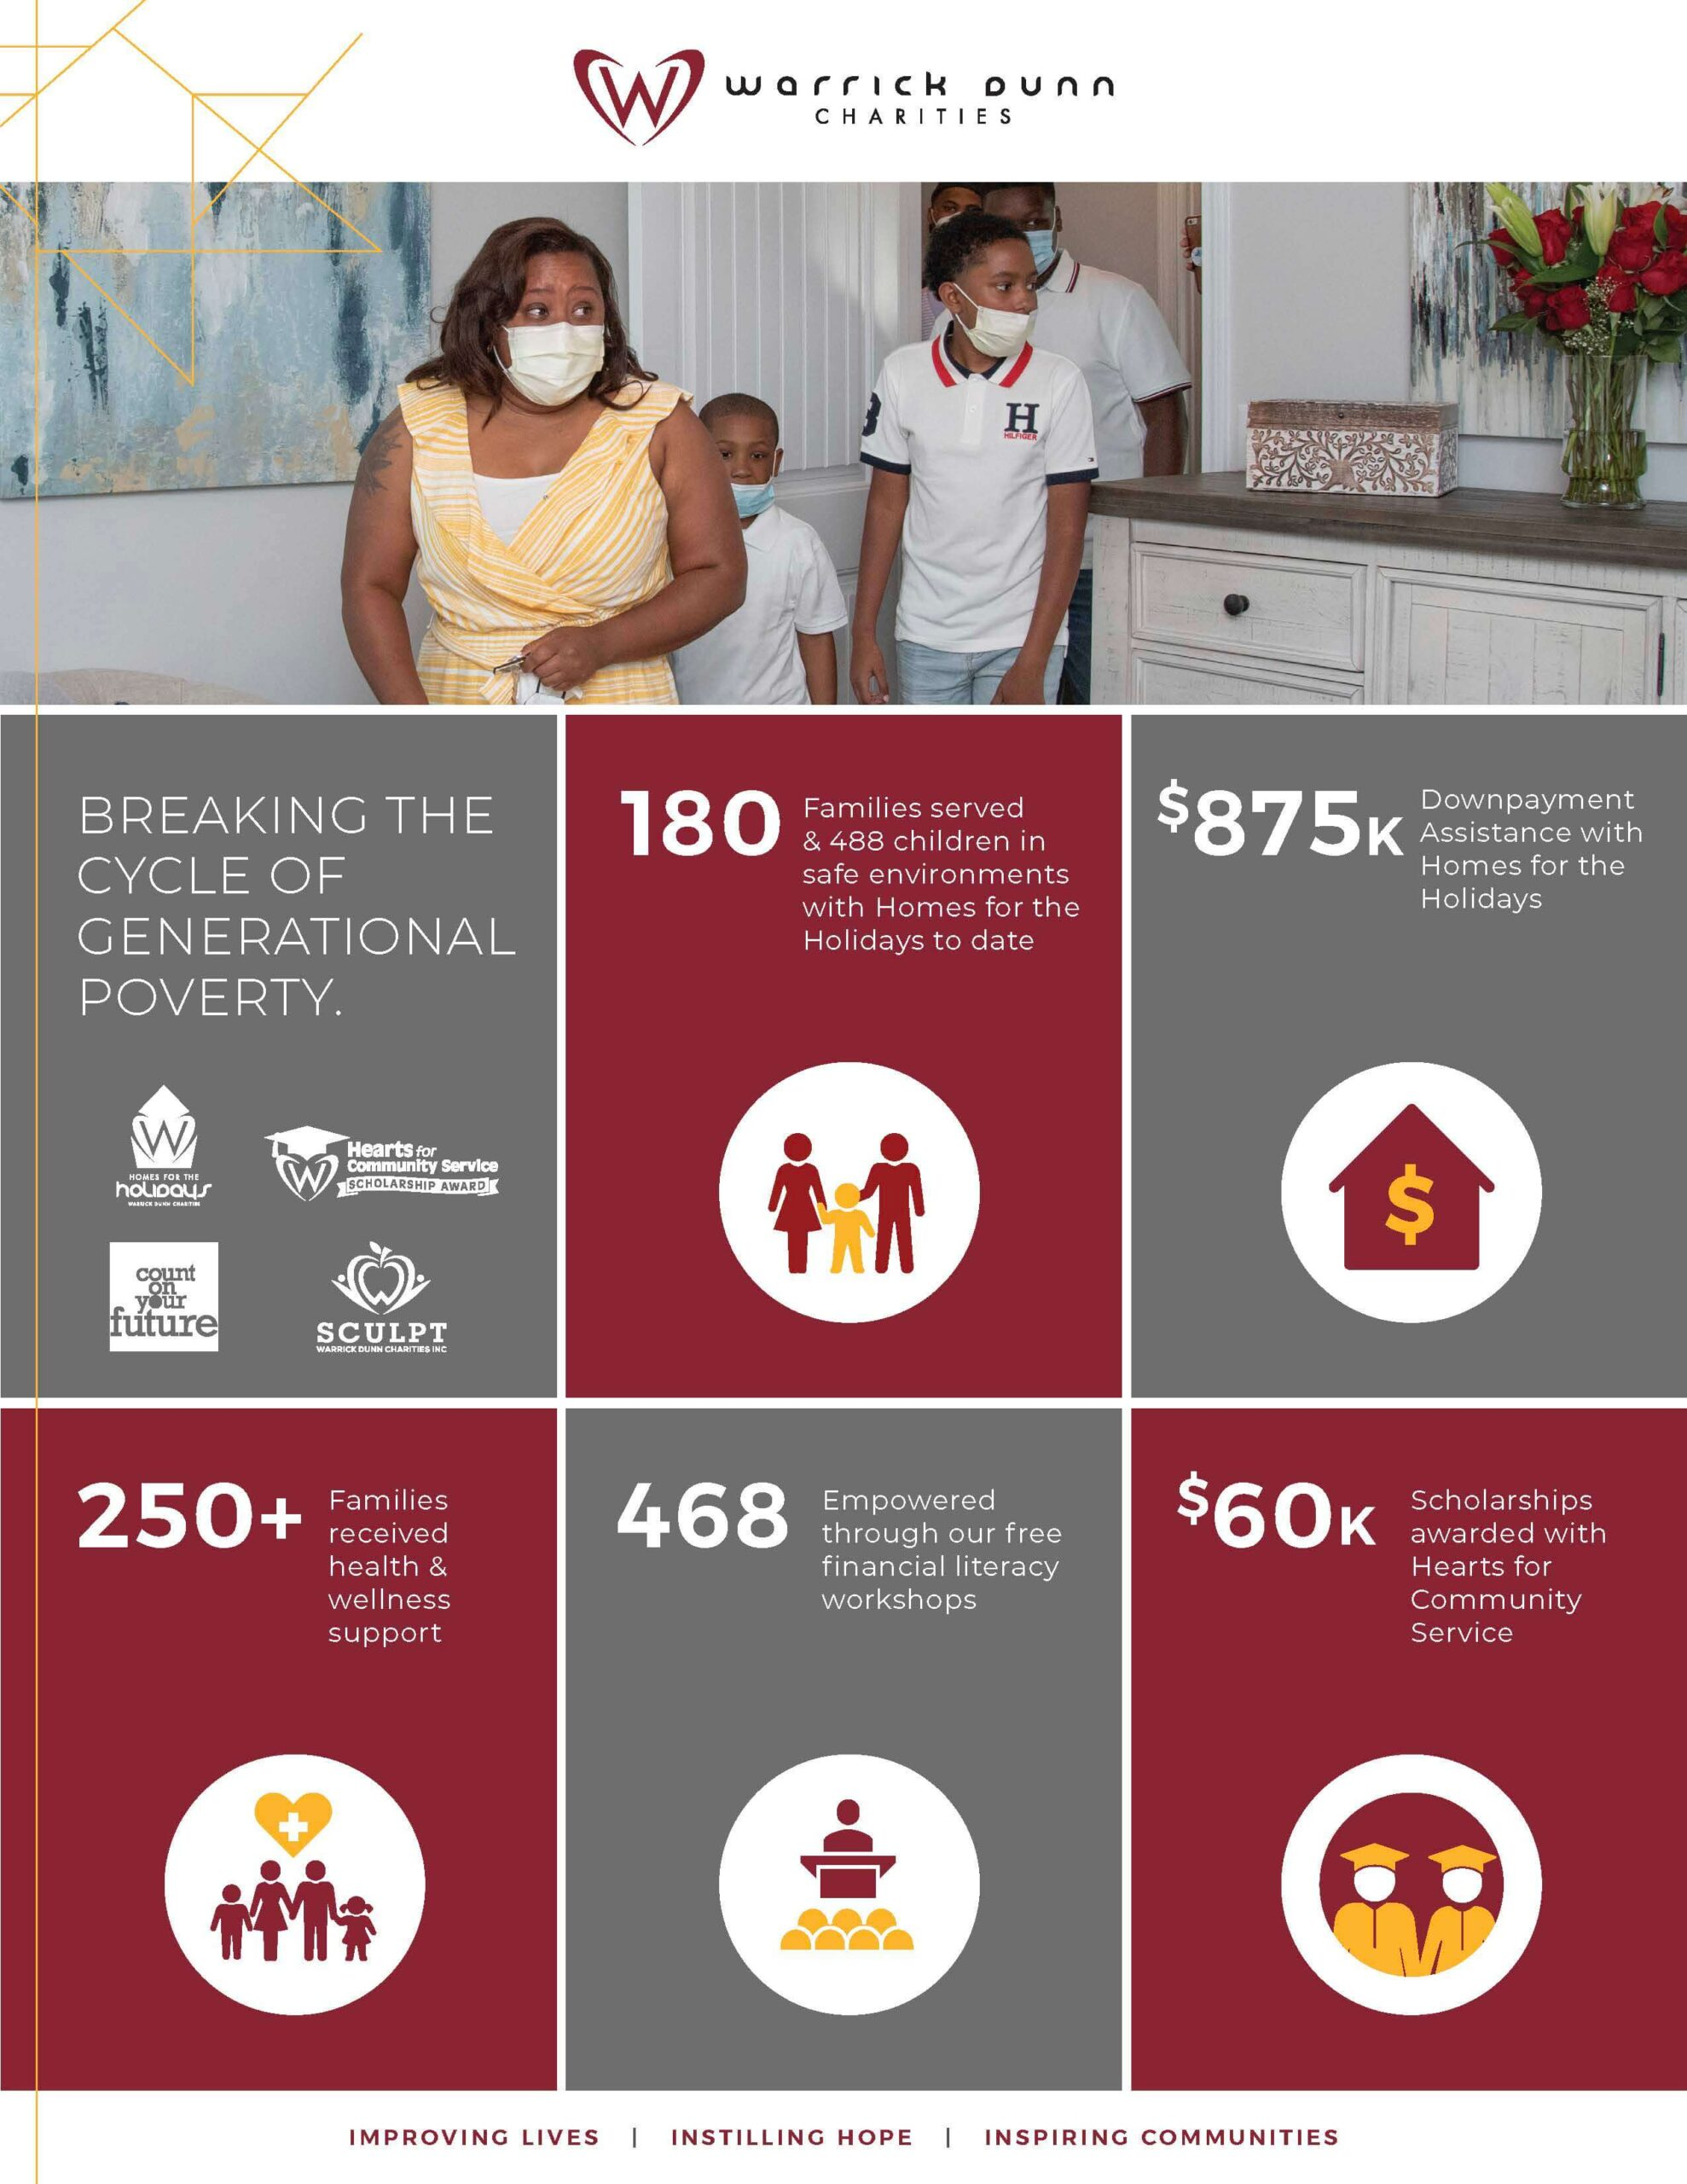 Warrick Dunn Charities impact to date, August 8th, 2020.